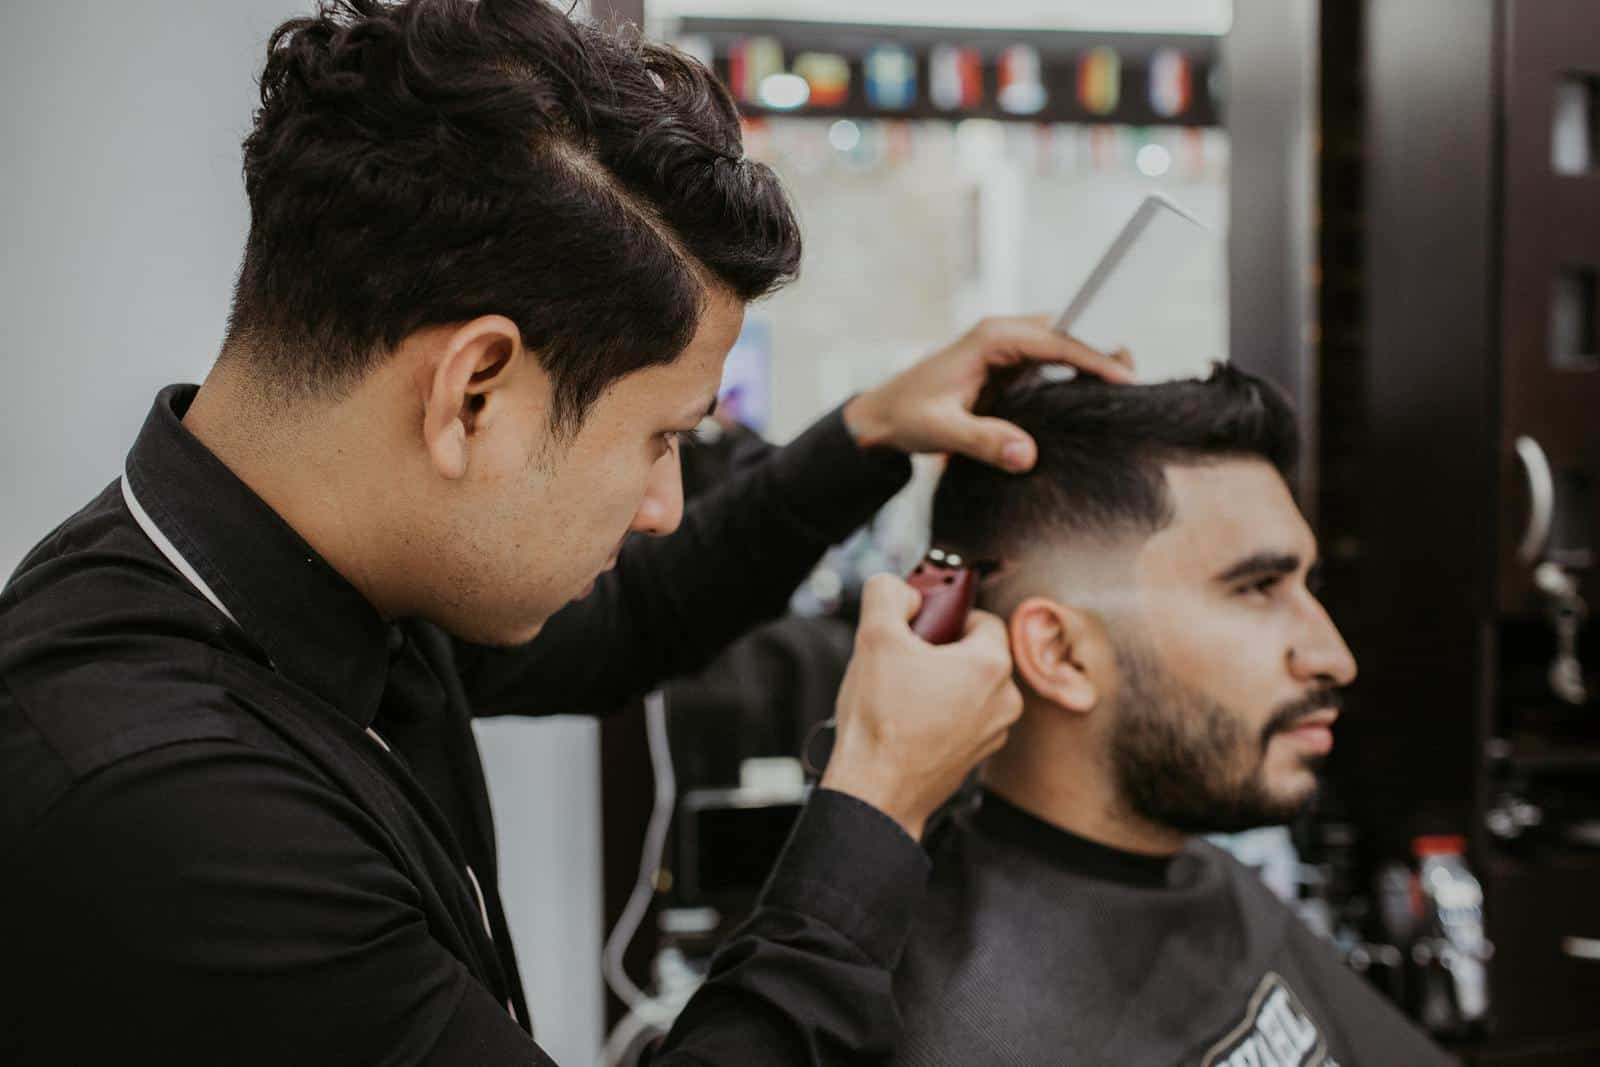 how long does it take to be a barber